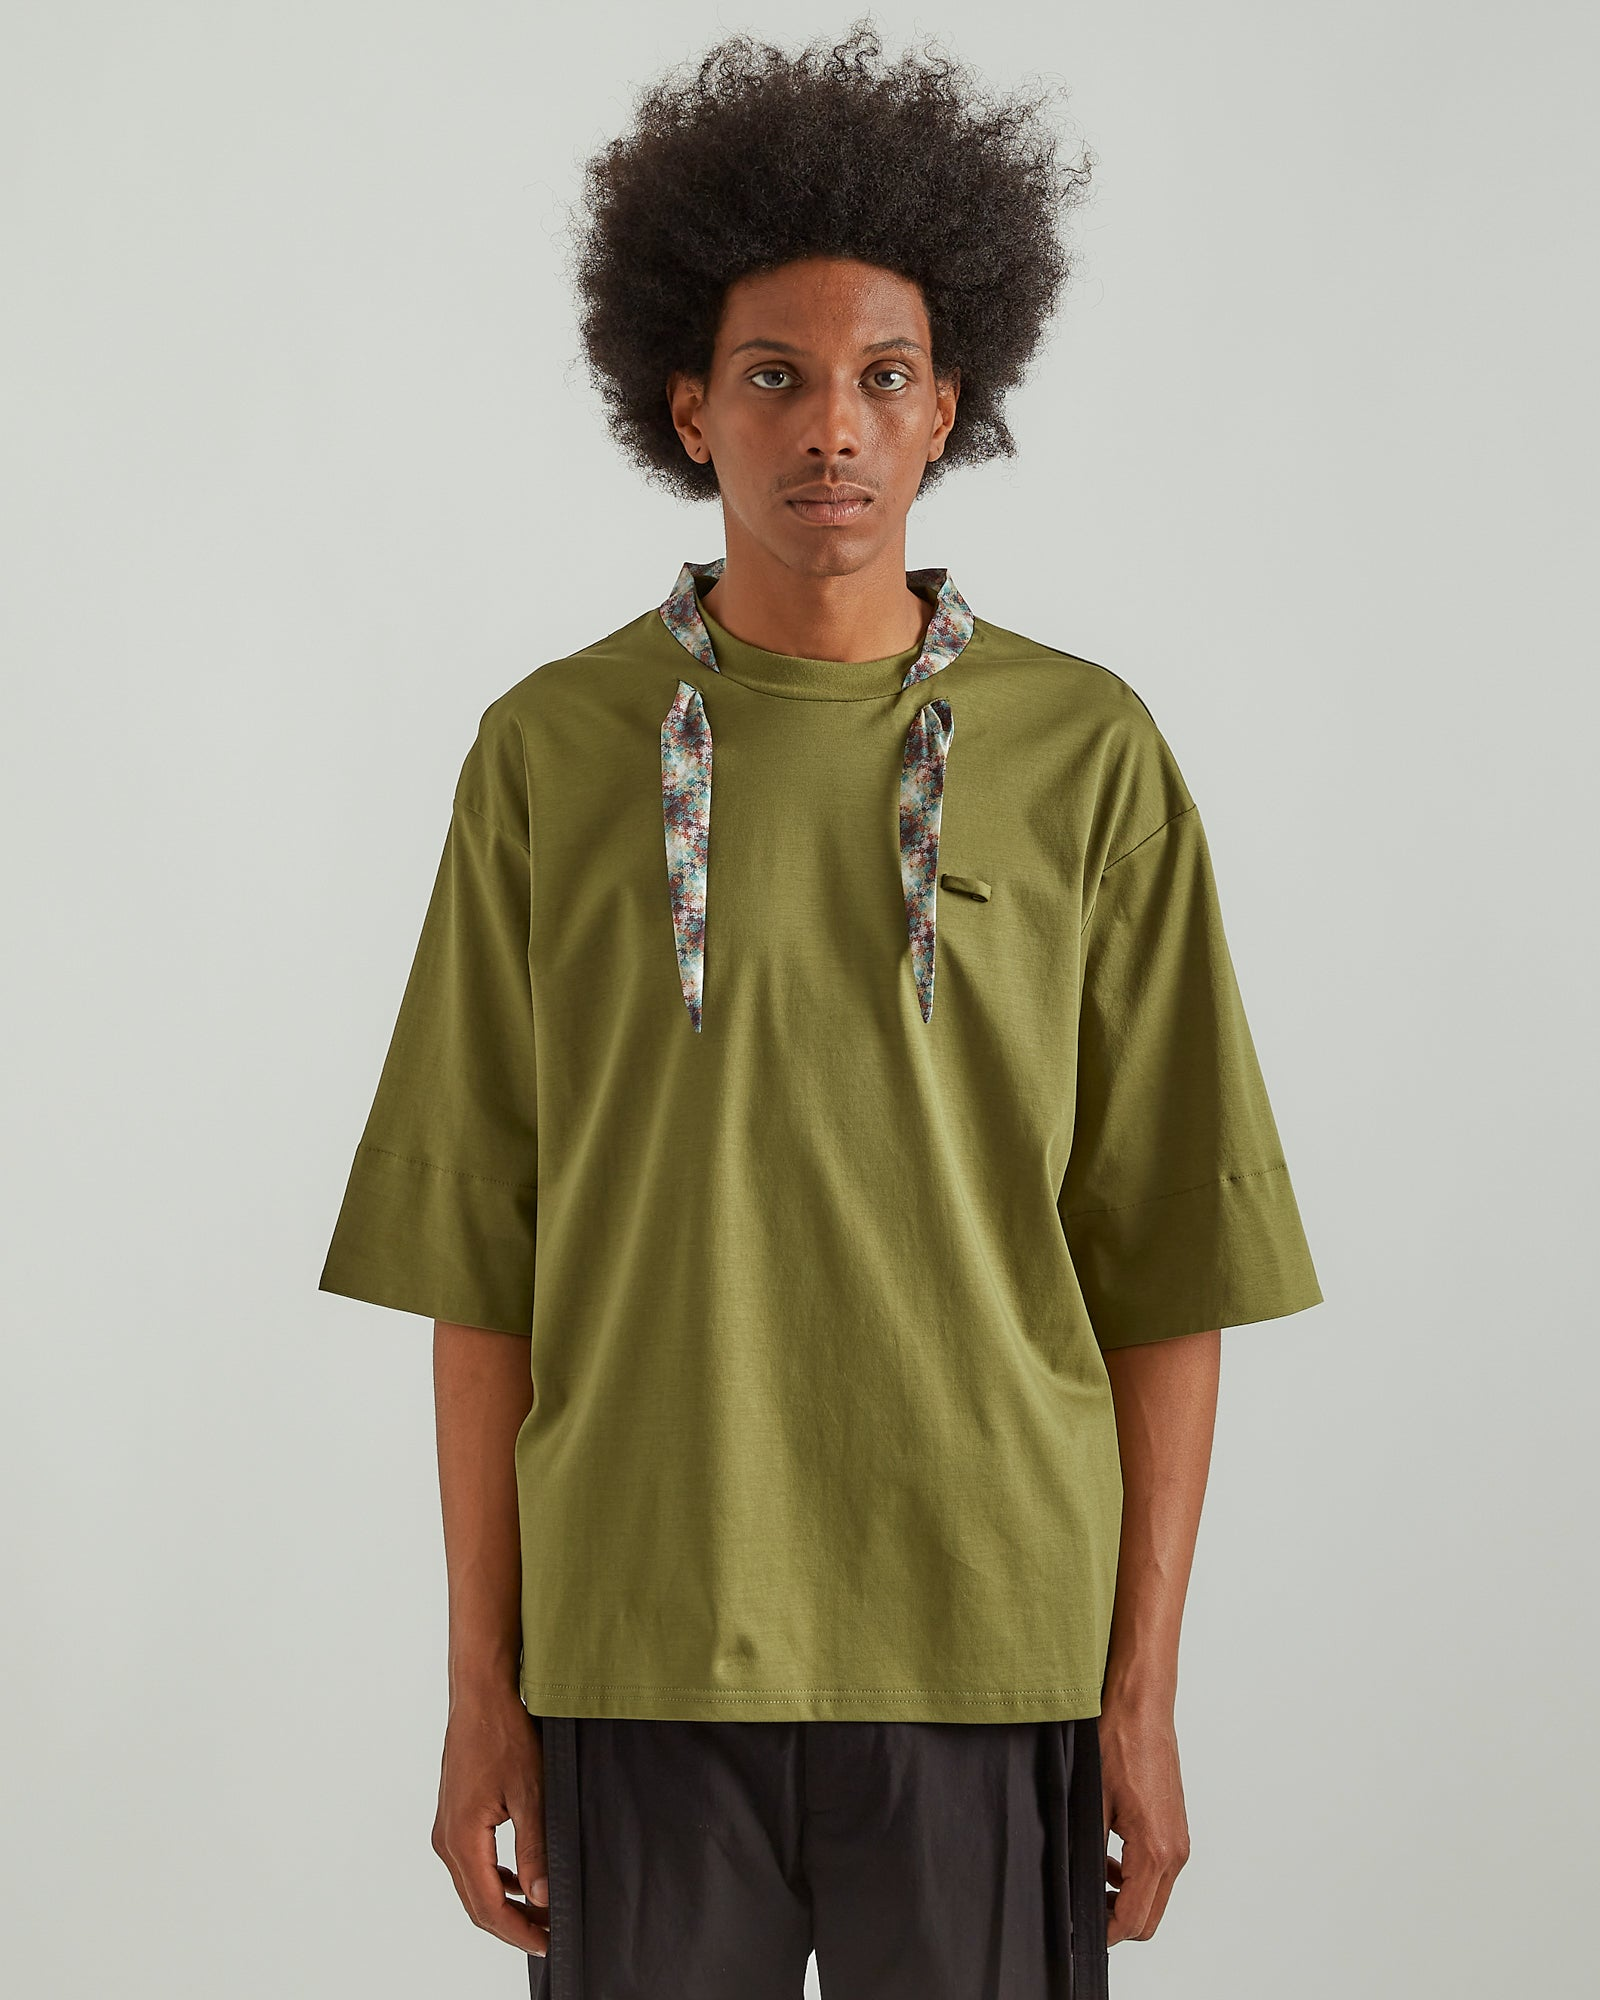 Neck Scarf T-Shirt in Green